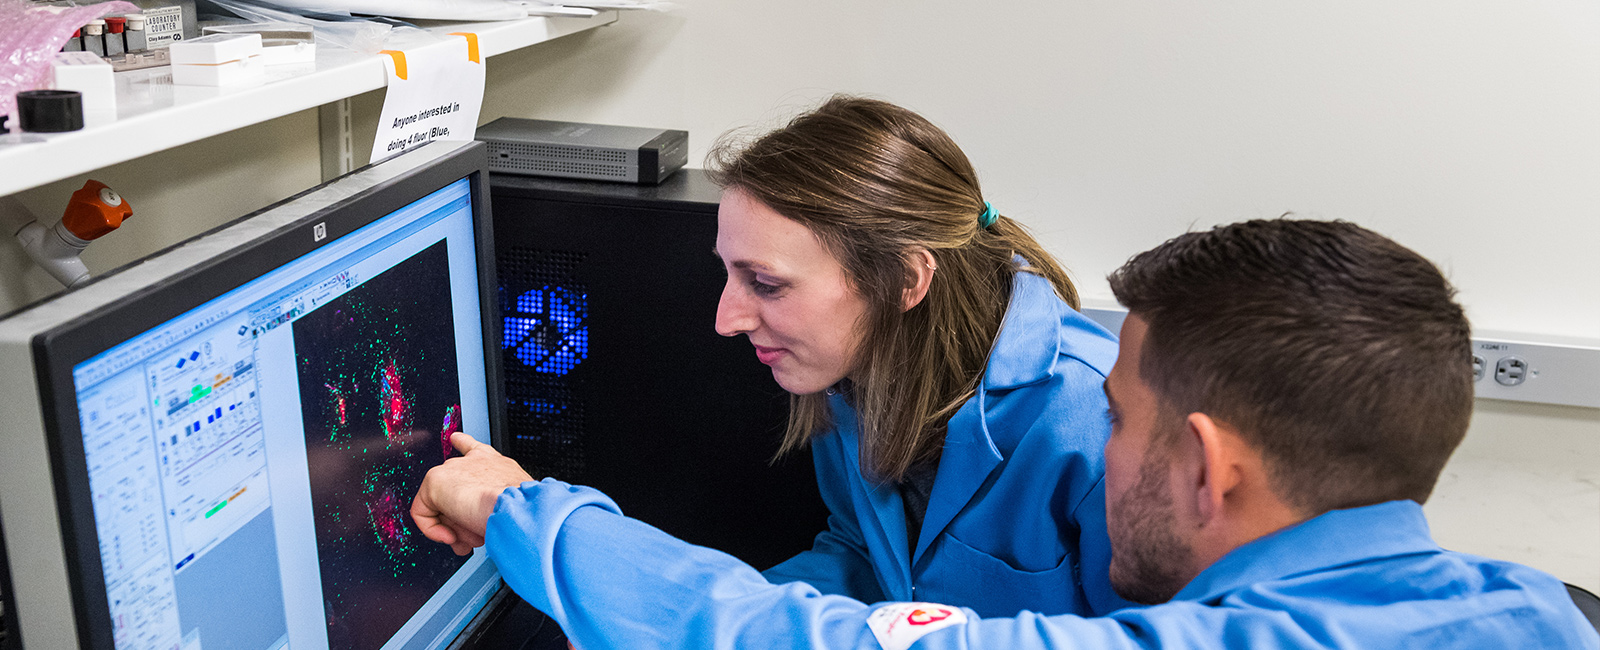 Two graduate students examine cells on a computer